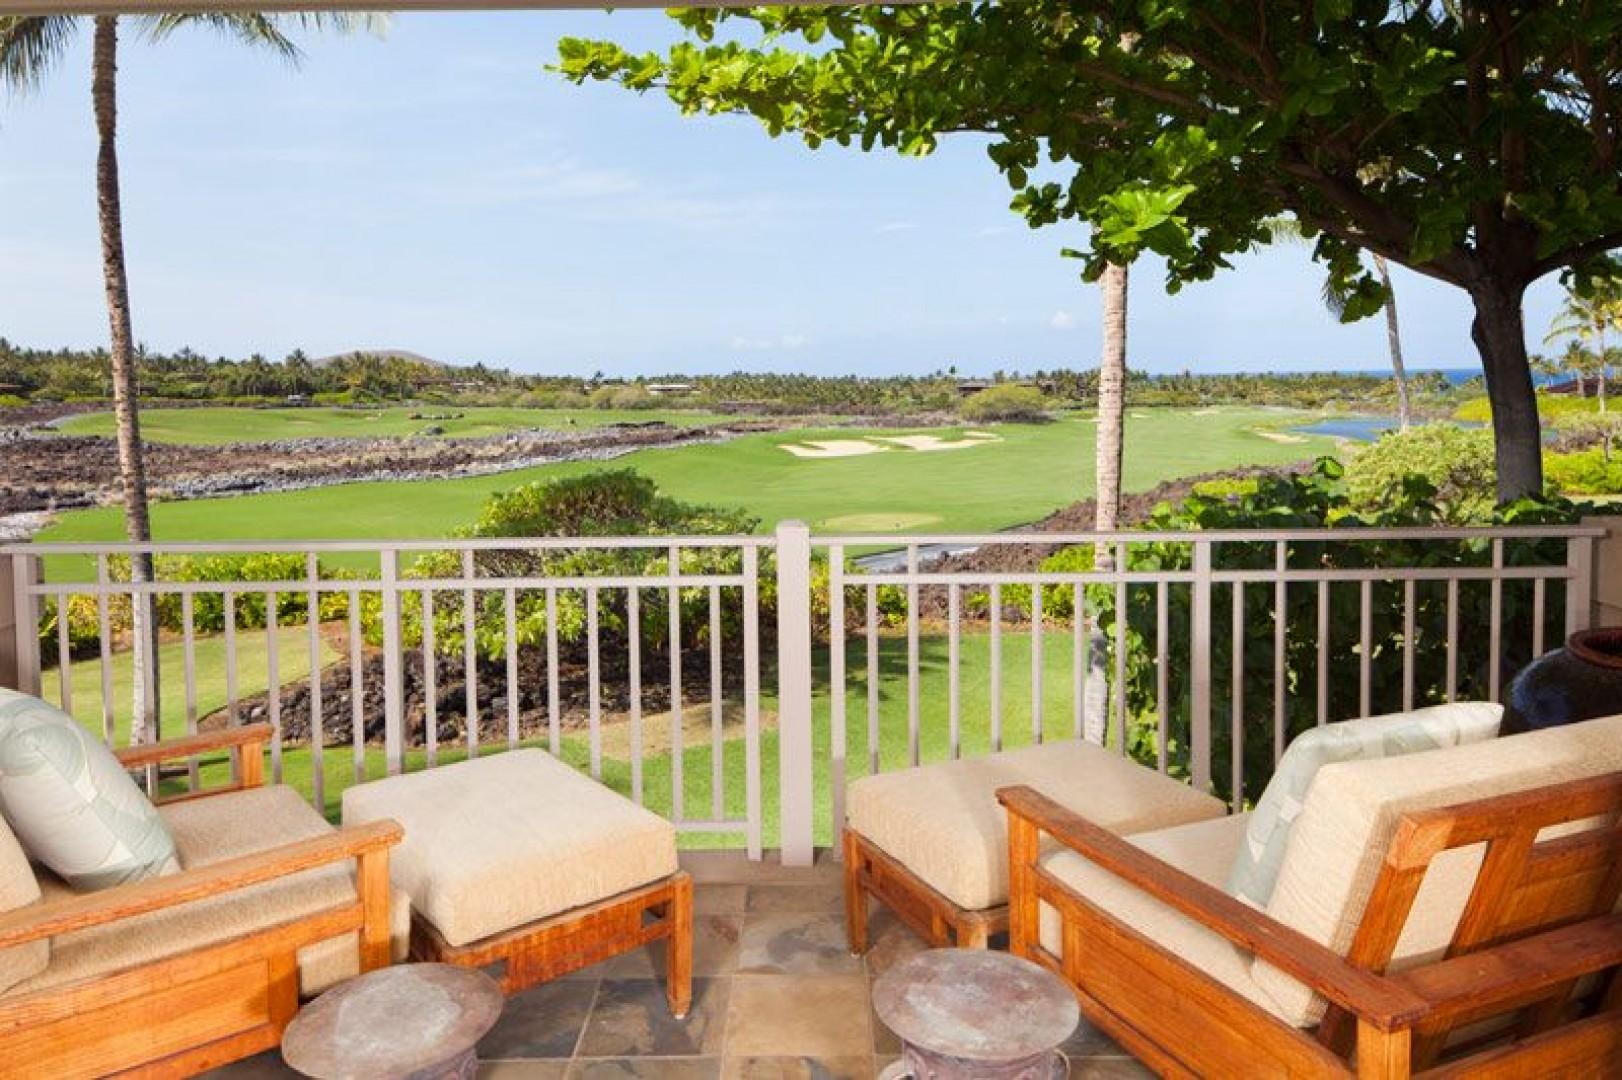 Spectacular views of the Hualalai Golf Course and Ocean